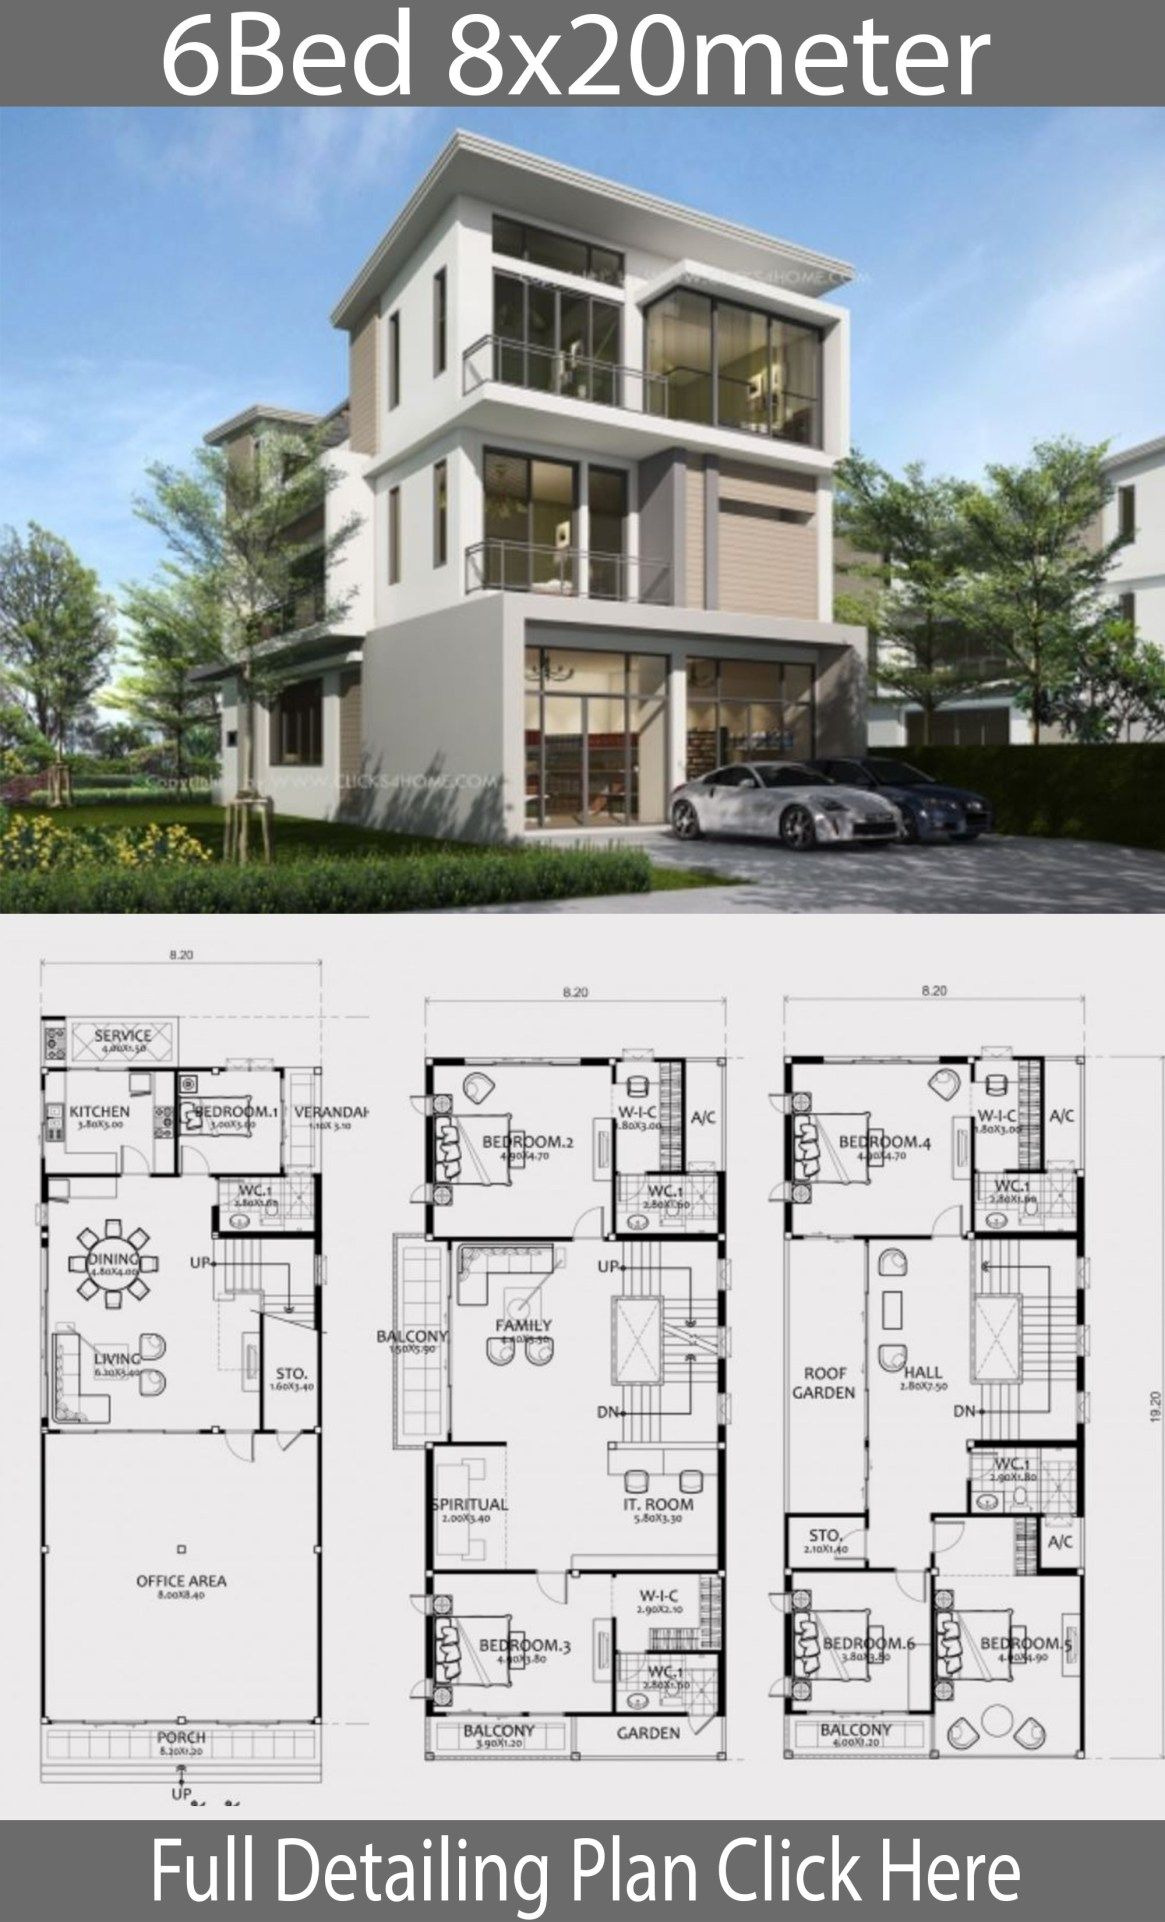 6 Bedroom Modern House New Home Design Plan 8x20m with 6 Bedrooms In 2020 with Images